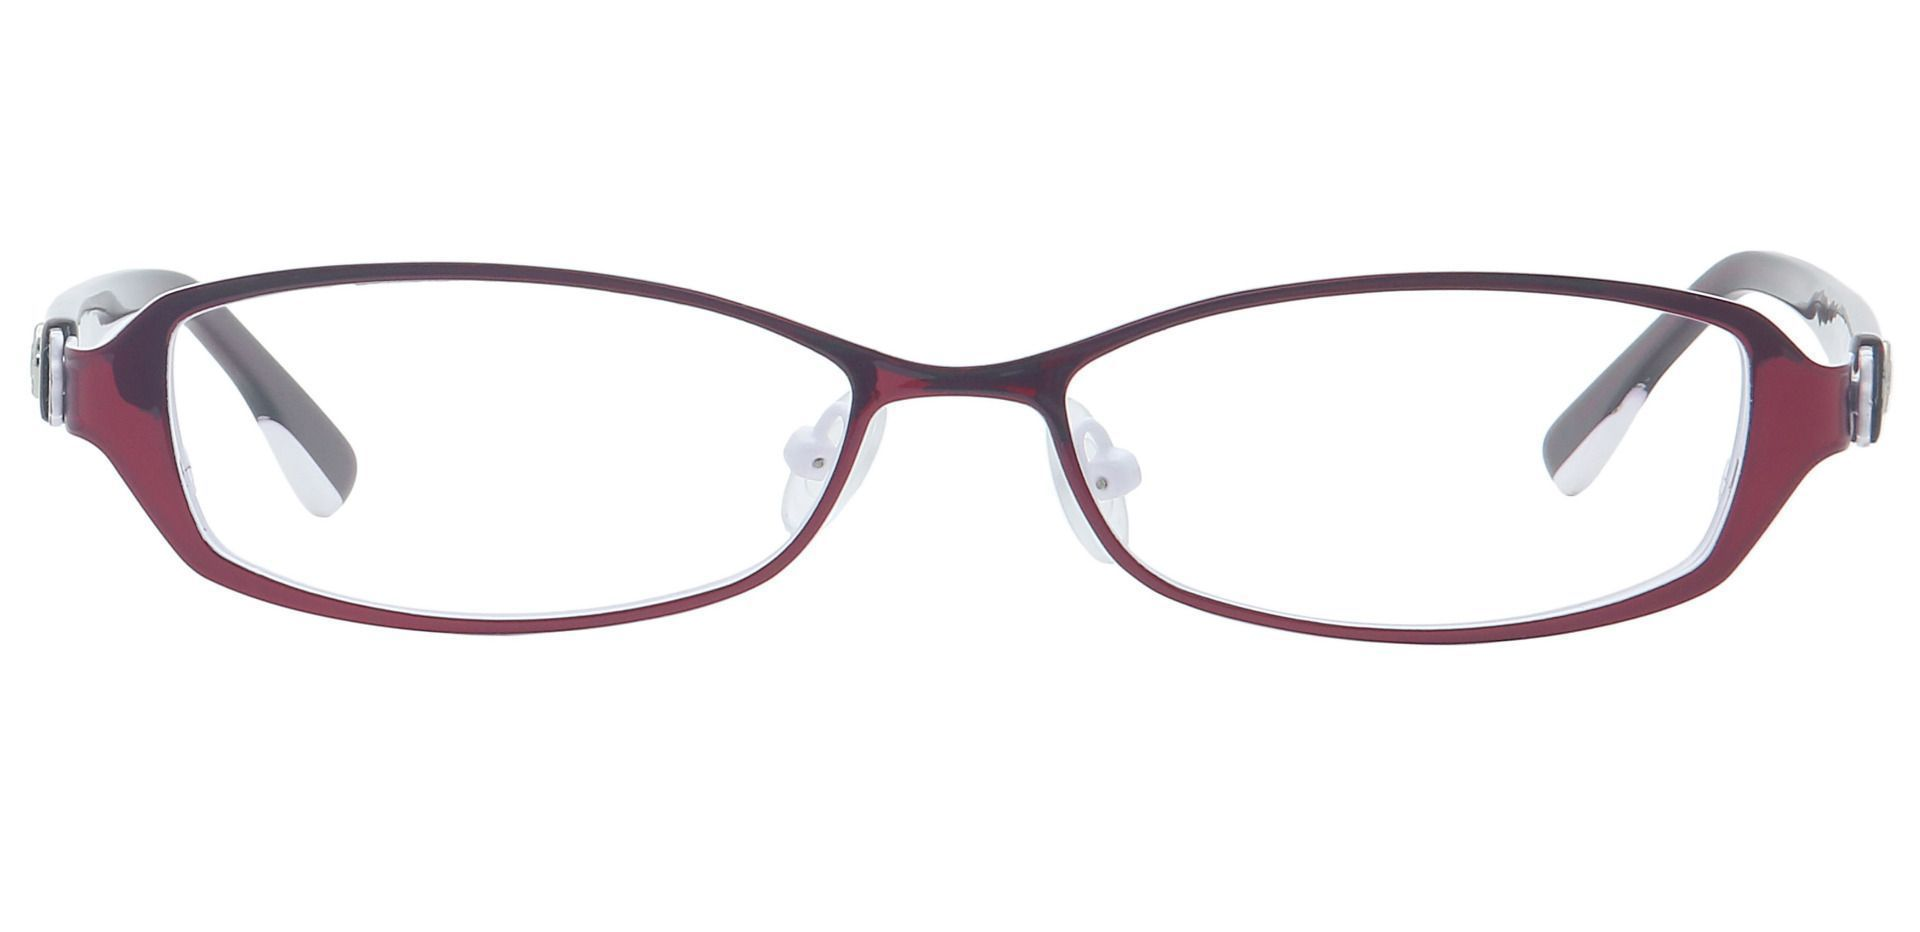 Tanya Oval Non-Rx Glasses - Red